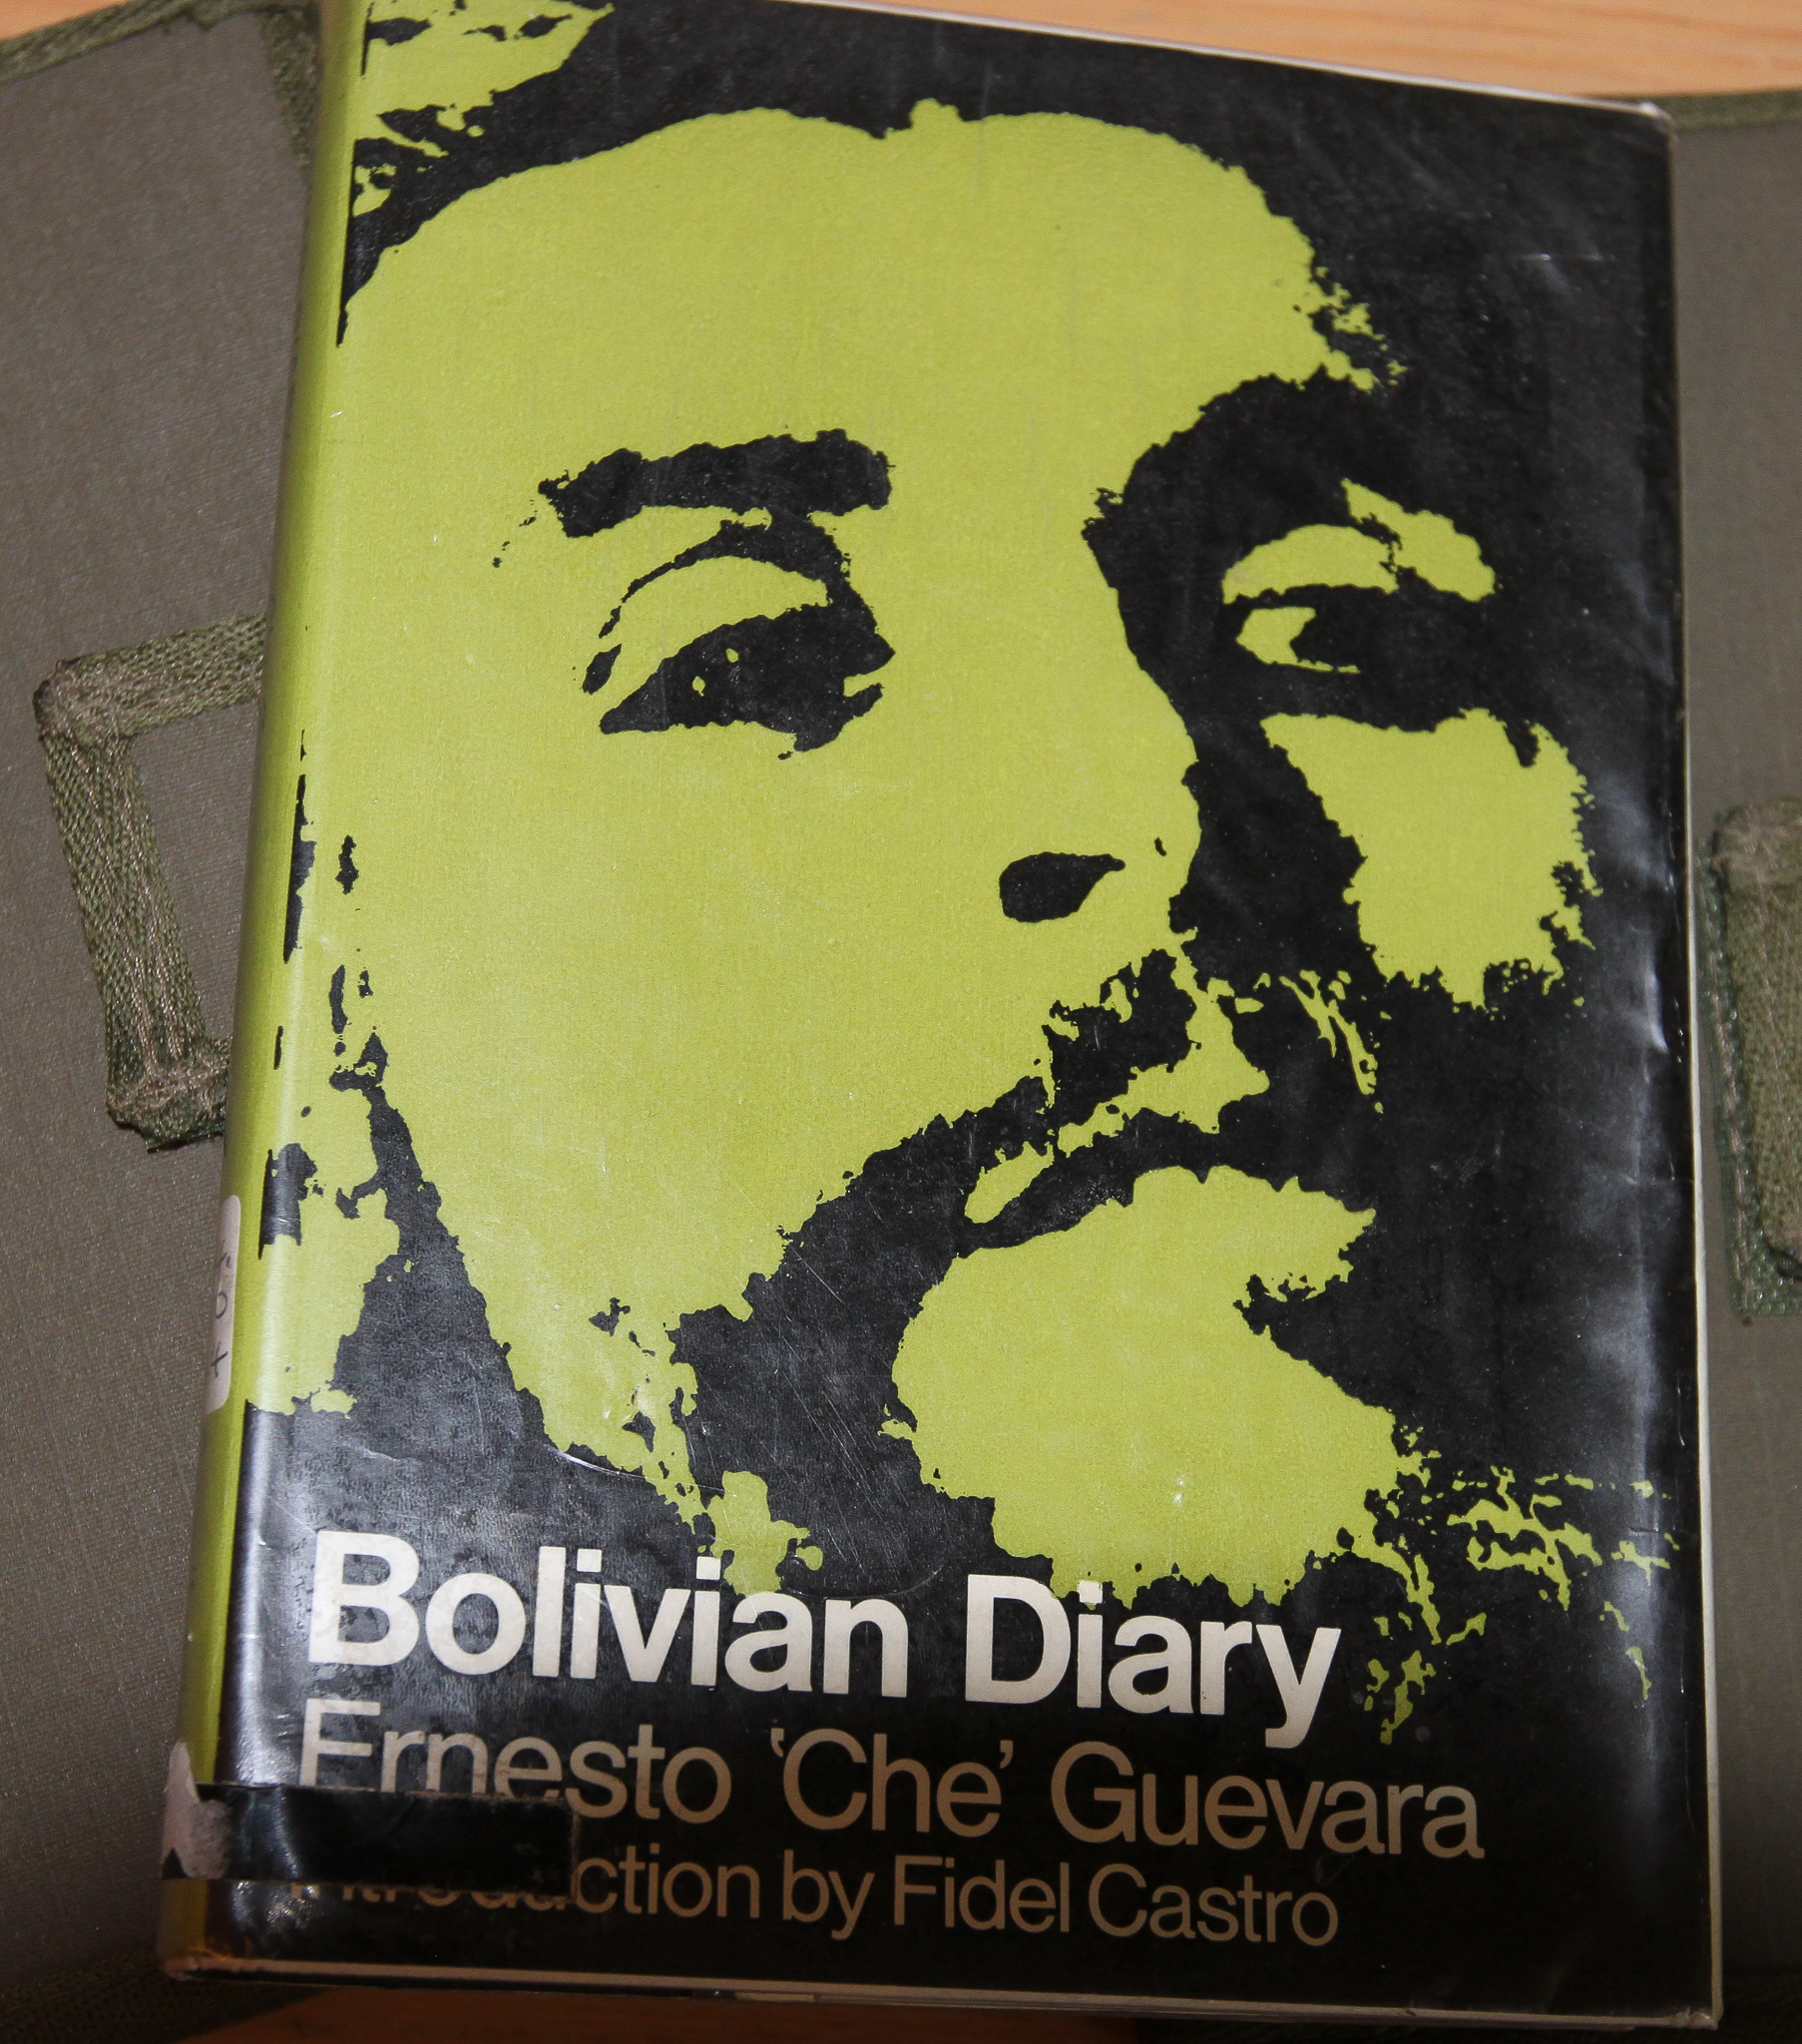 BOLIVIAN DIARY CONTAINS ALL CHE'S DIARY ENTRIES FROM NOVEMBER 7TH 1966, THE DAY ON WHICH HE ARRIVED AT THE NACAHUASU, UNTIL OCTOBER 7TH, 1967, THE NIGHT BEFORE THE COMBAT IN THE YURO RAVINE.